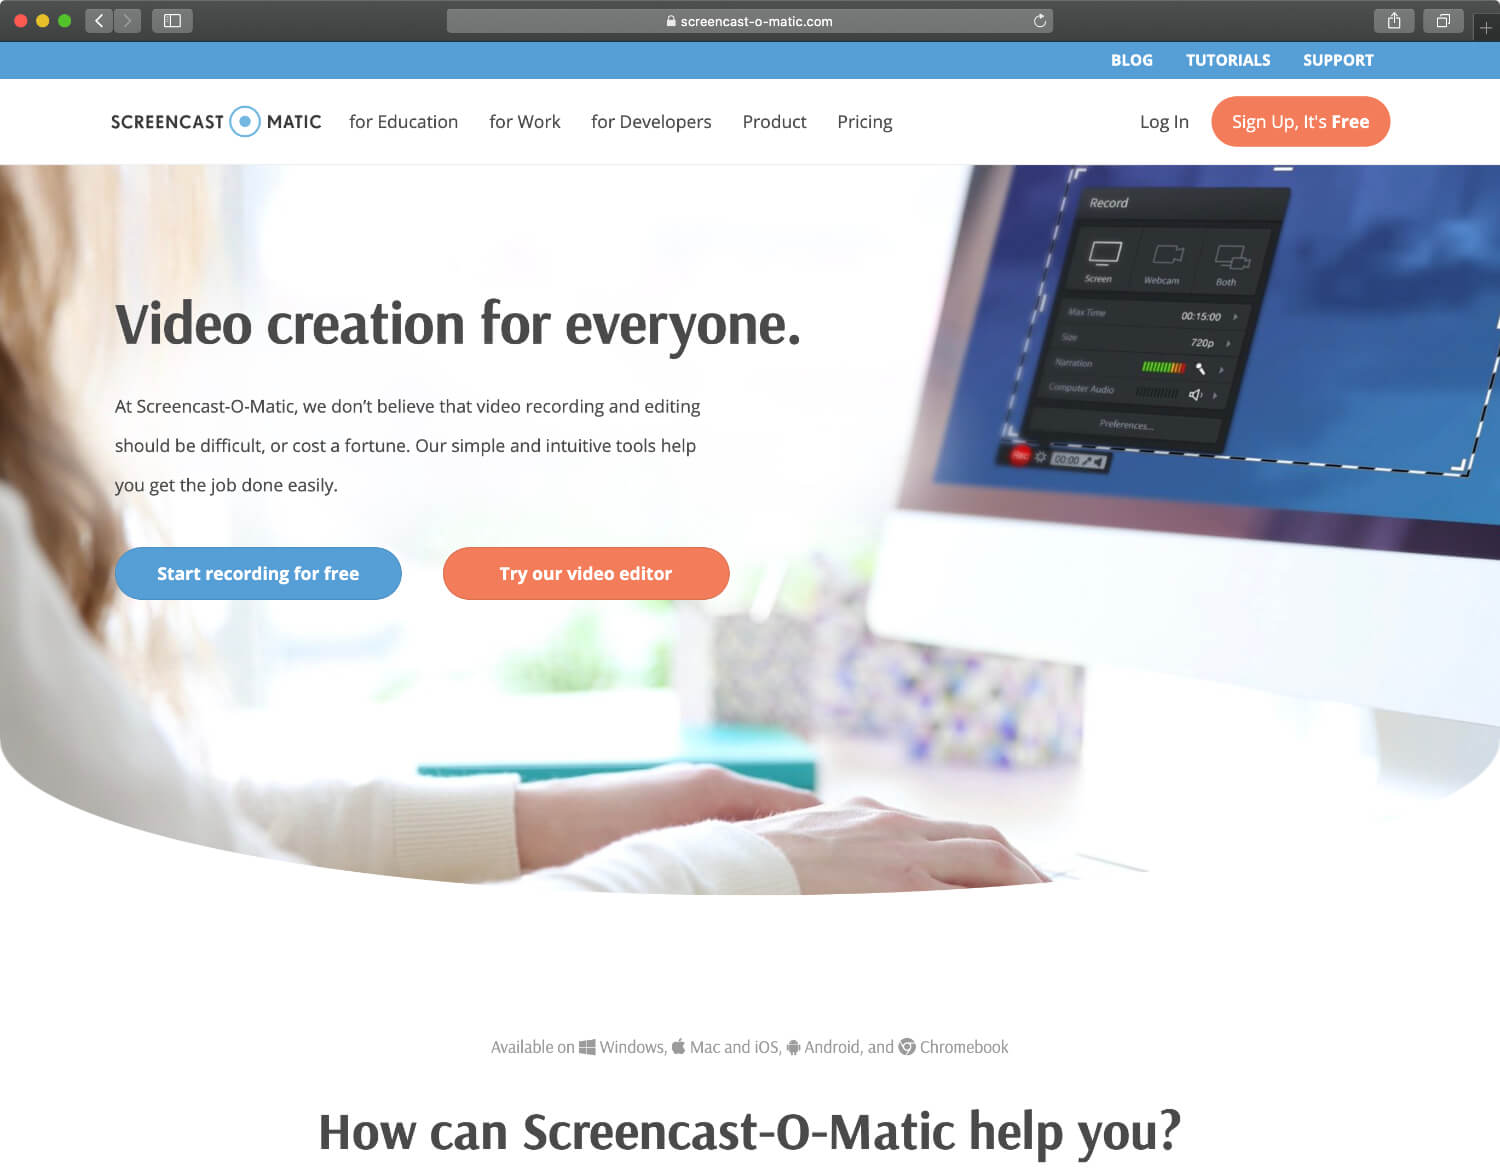 Screencast-O-Matic is especially popular for its voice-to-screen recording capabilities.